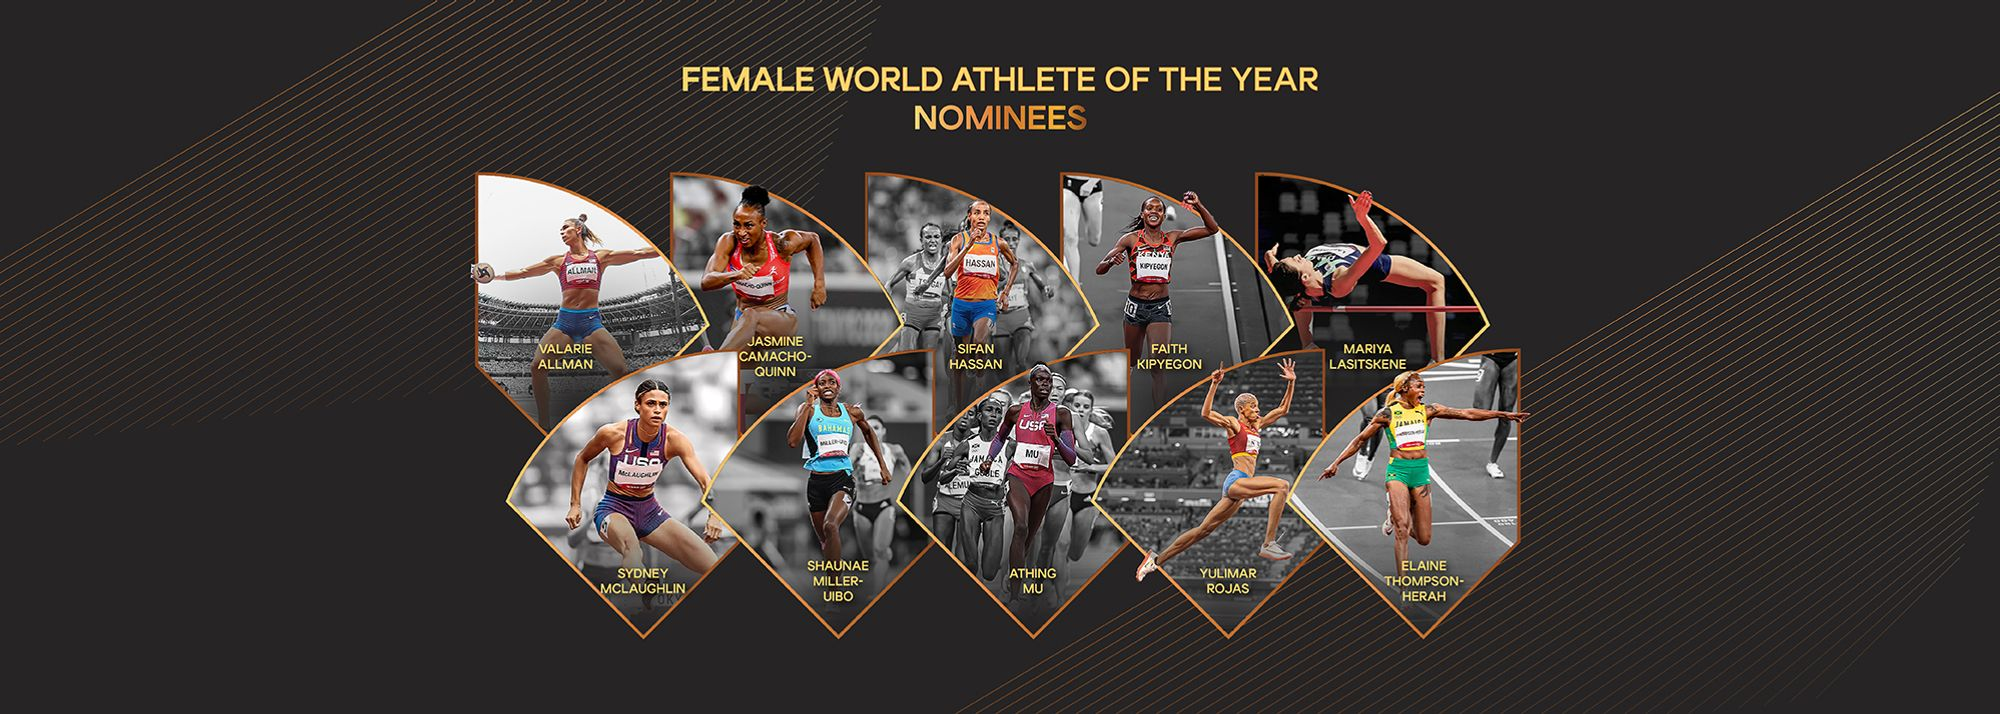 World Athletics is pleased to confirm a list of 10 nominees for Female World Athlete of the Year.